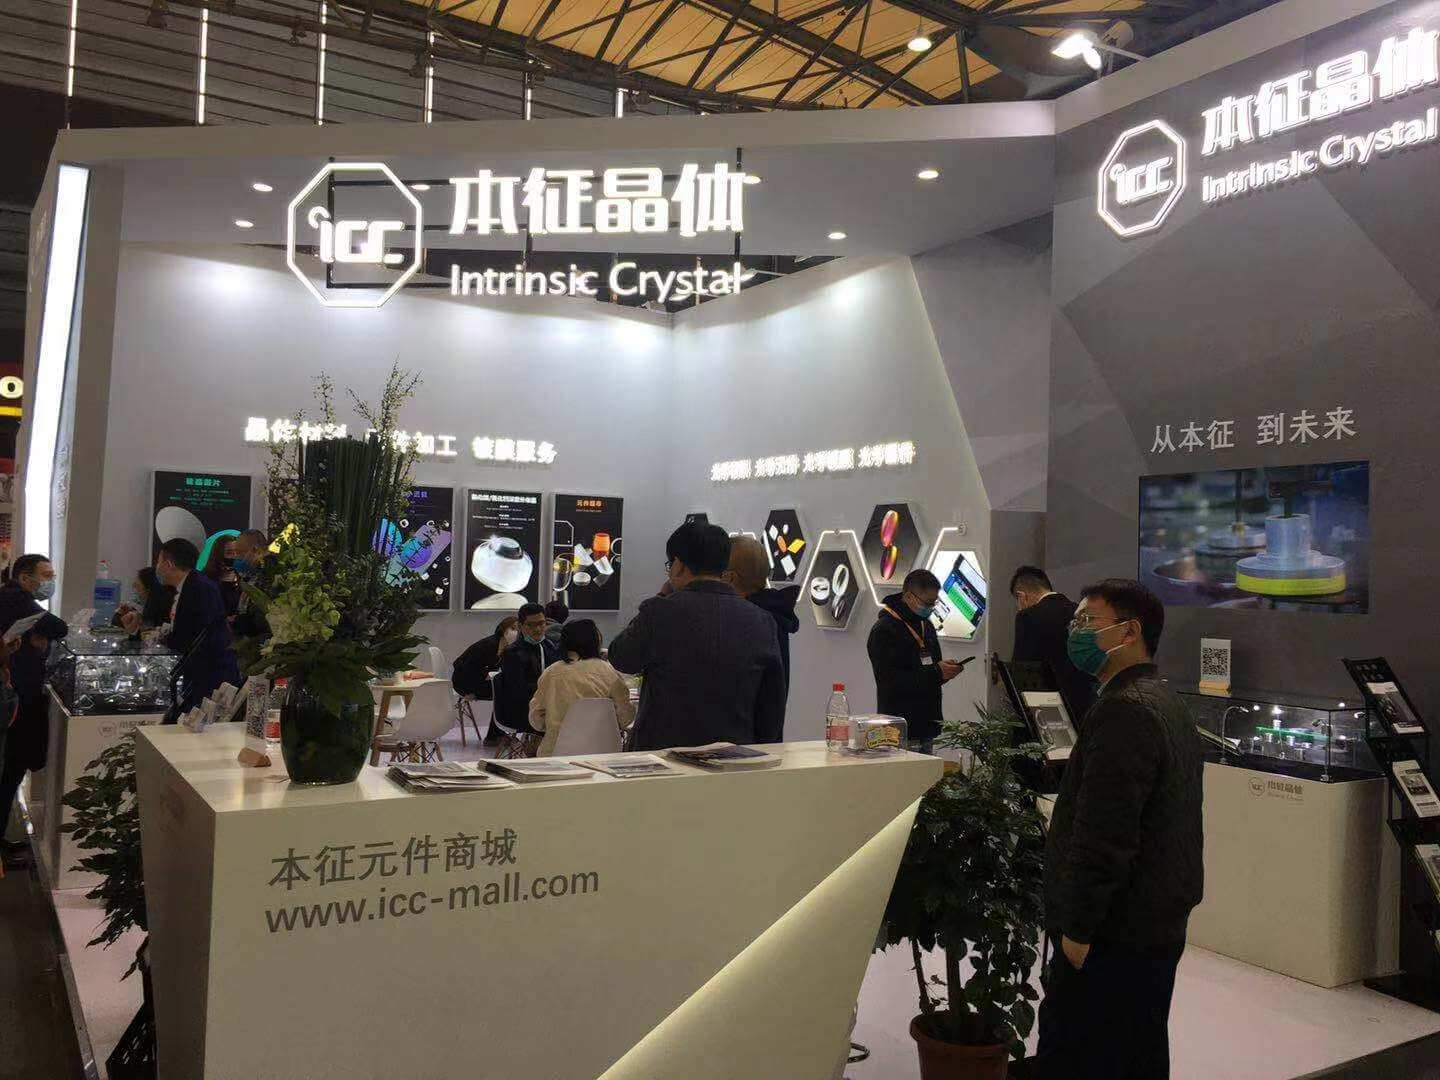 ICC has participated in Munich and Shanghai Optical Expo 2021